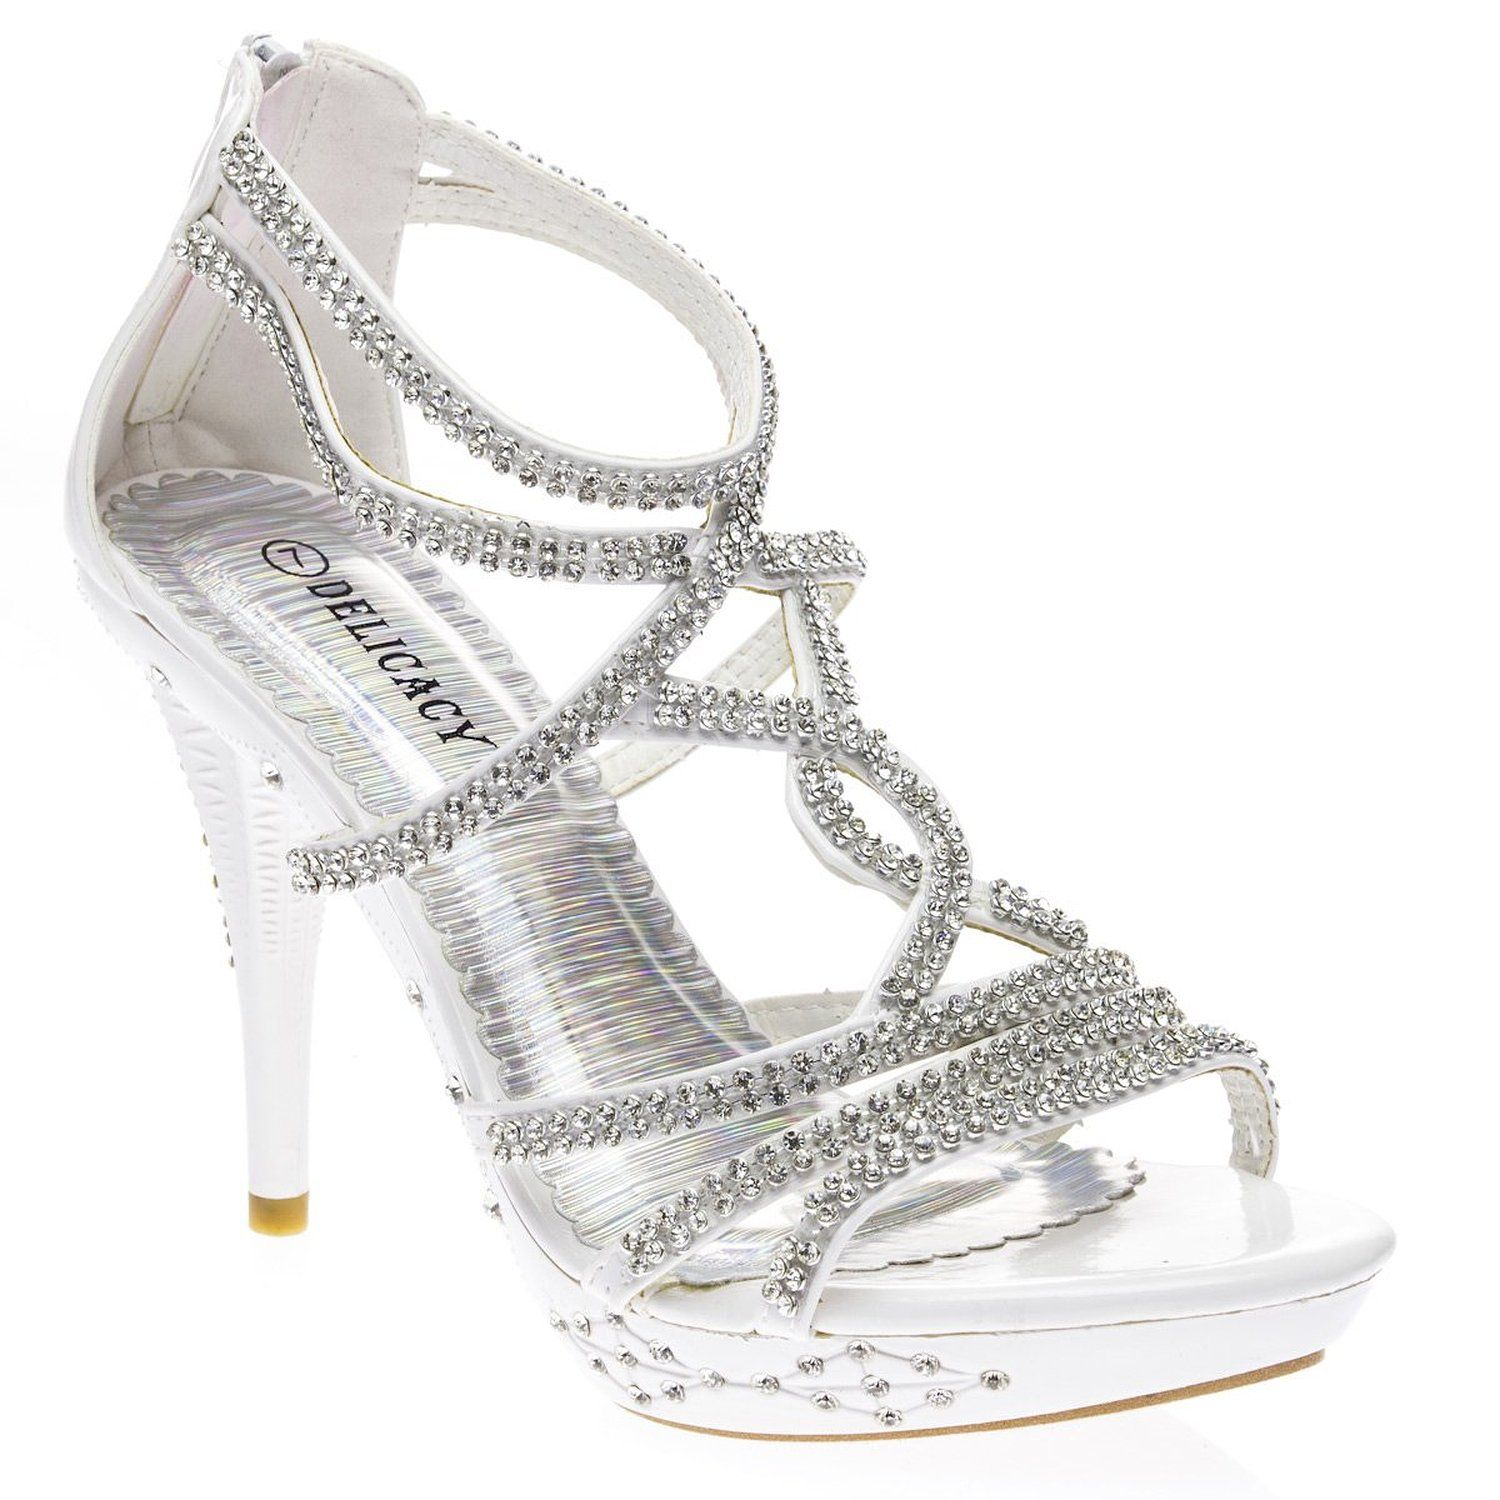 09b40f79acd1 Amazon.com  Delicacy Womens DELICACY32 Open Toe High Heel Stiletto Pump  Shoes  Shoes